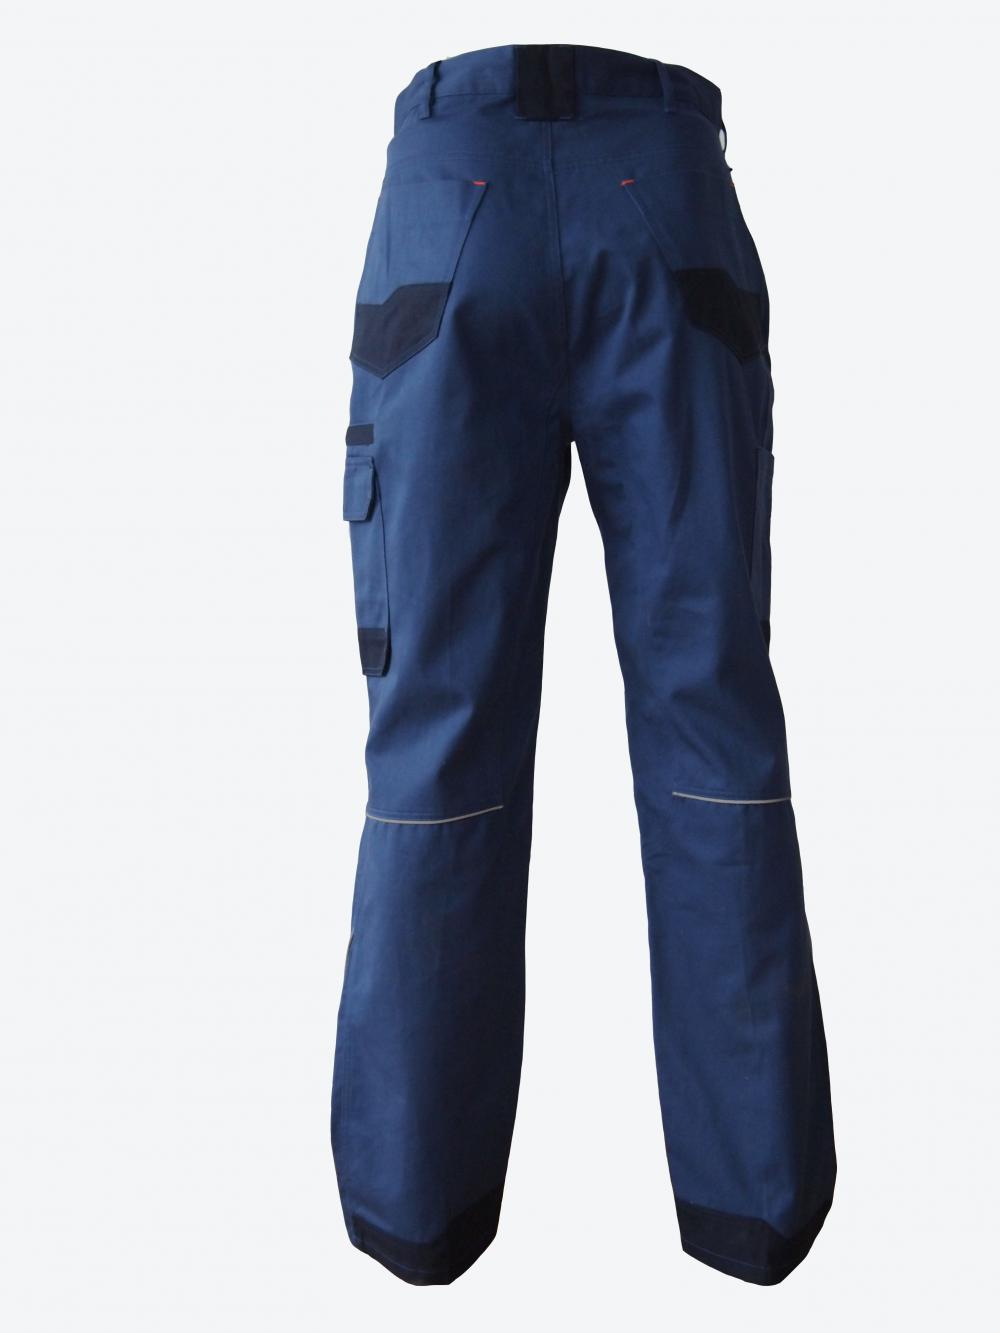 Construction Working Pants